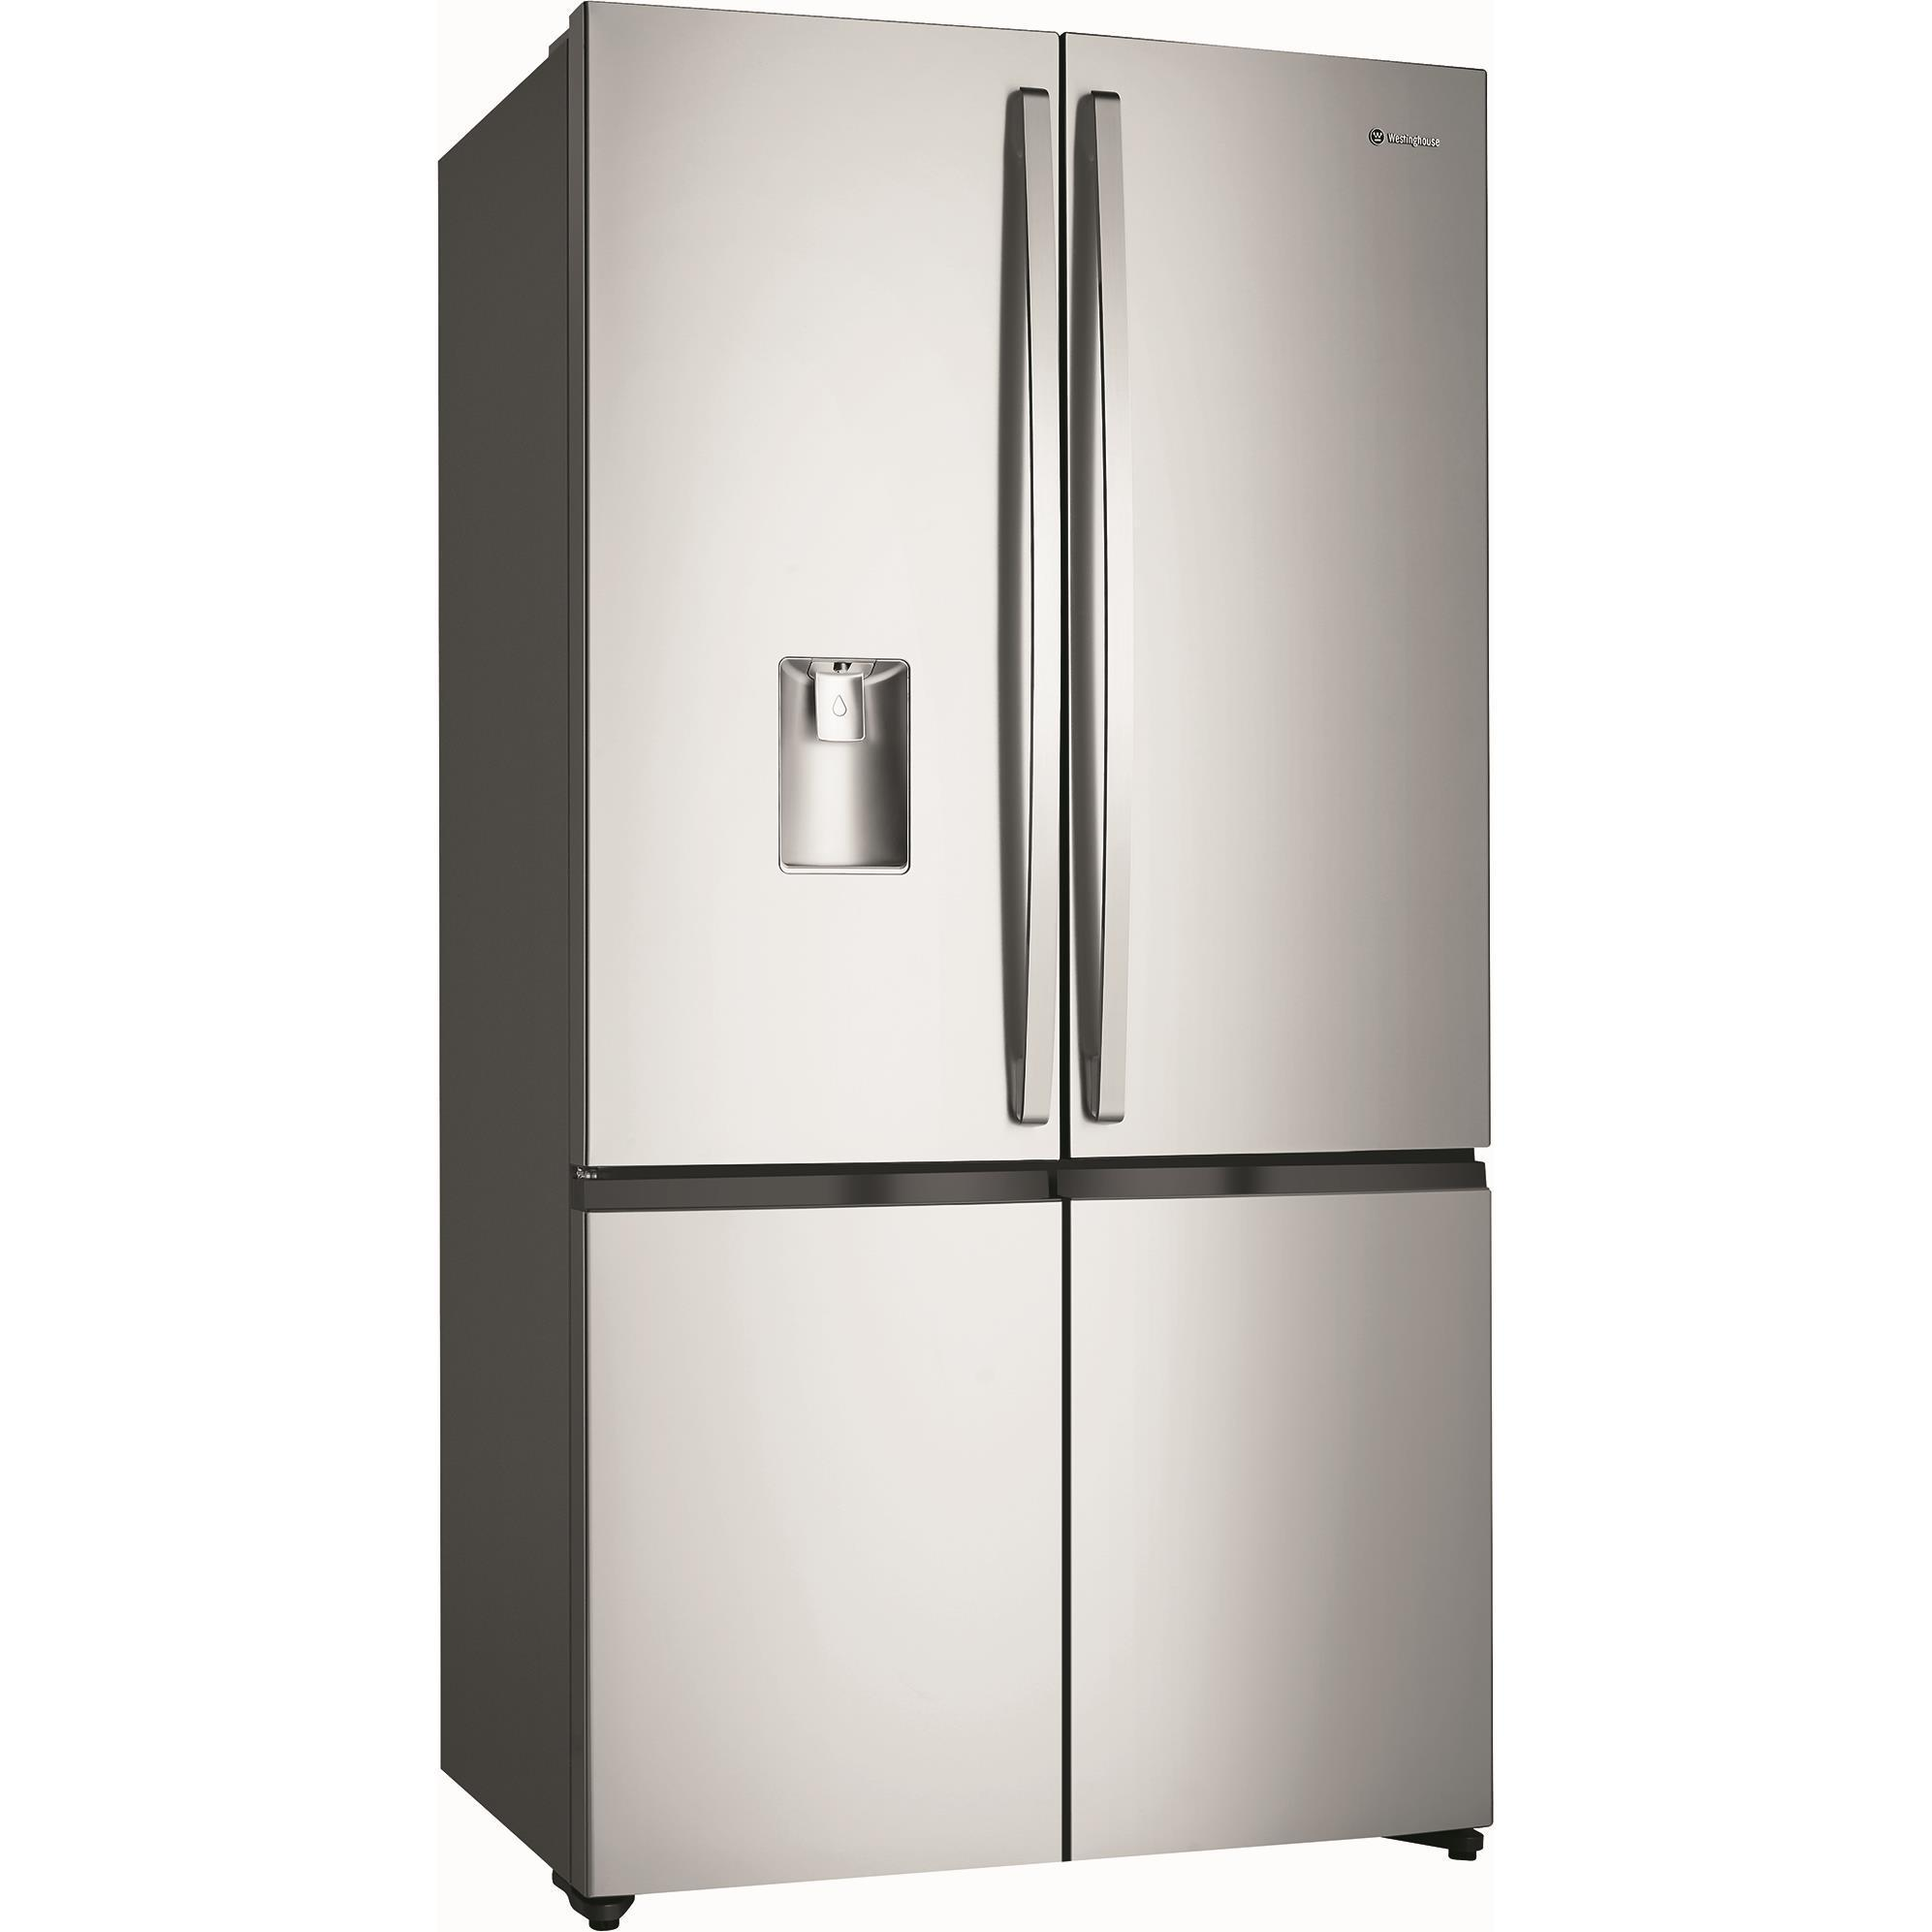 Westinghouse WQE6060 SA 600L French Door Fridge (S/Steel)